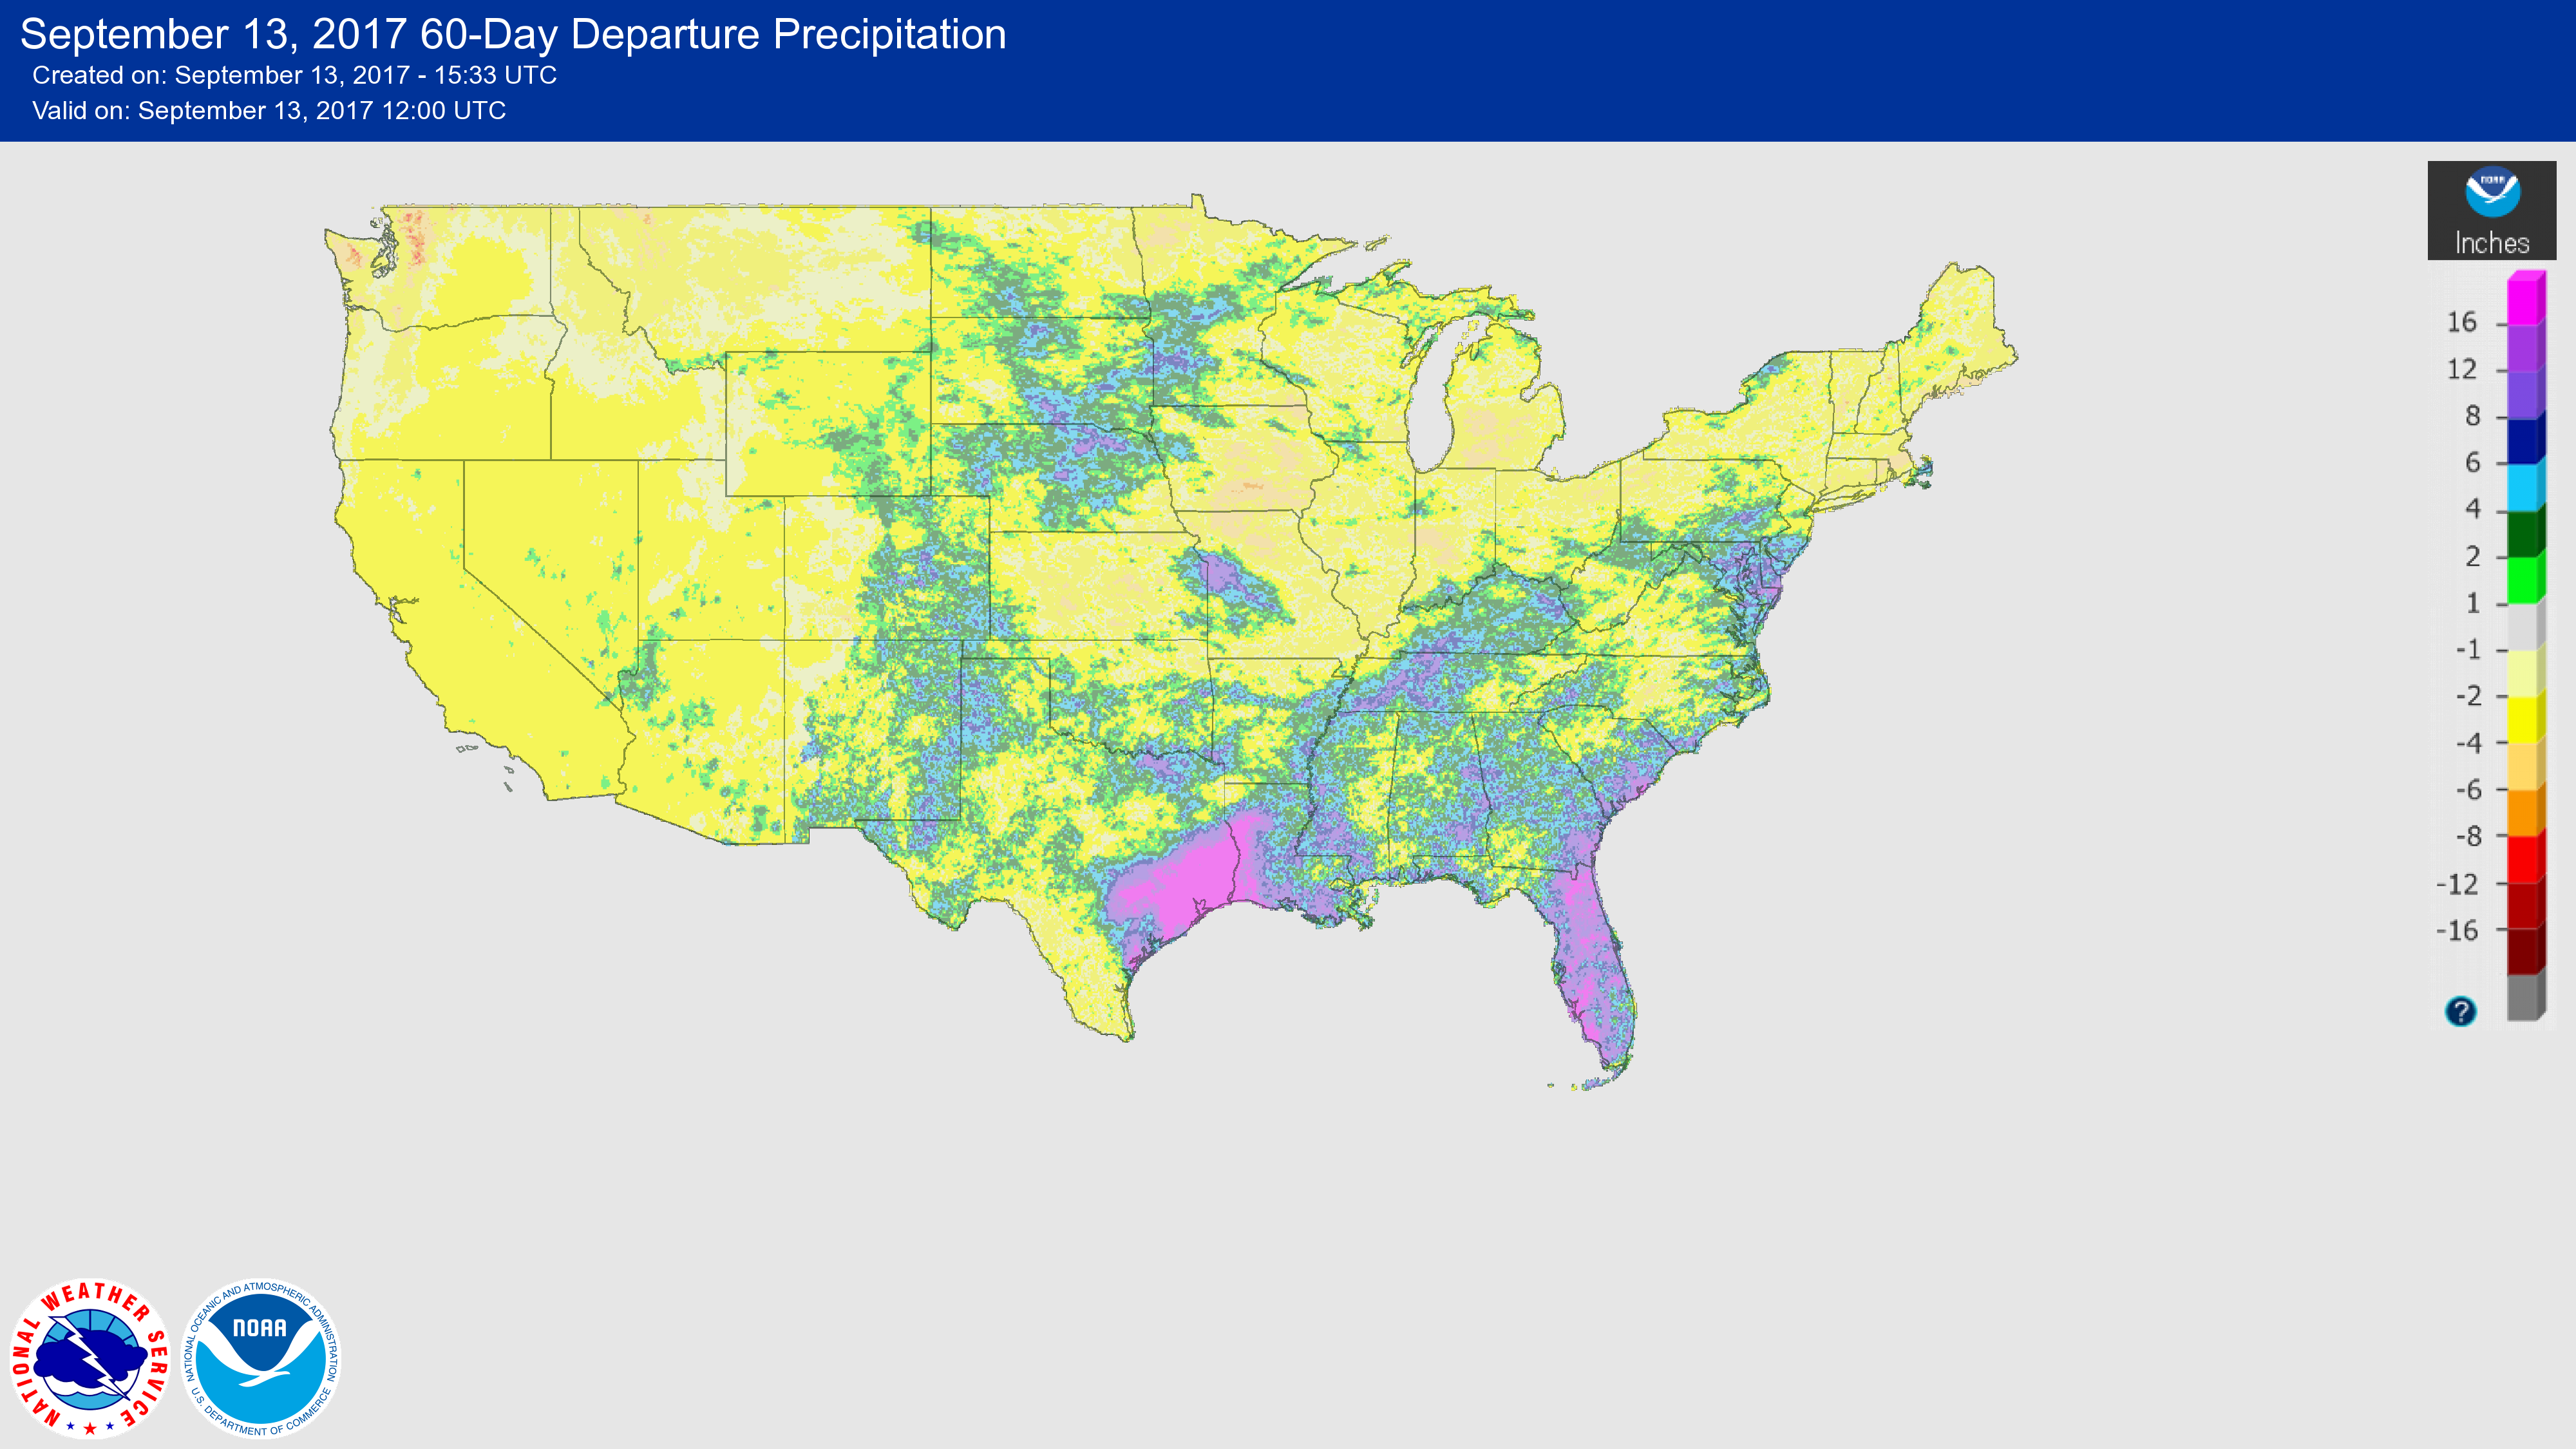 60-day Departure Precipitation.png